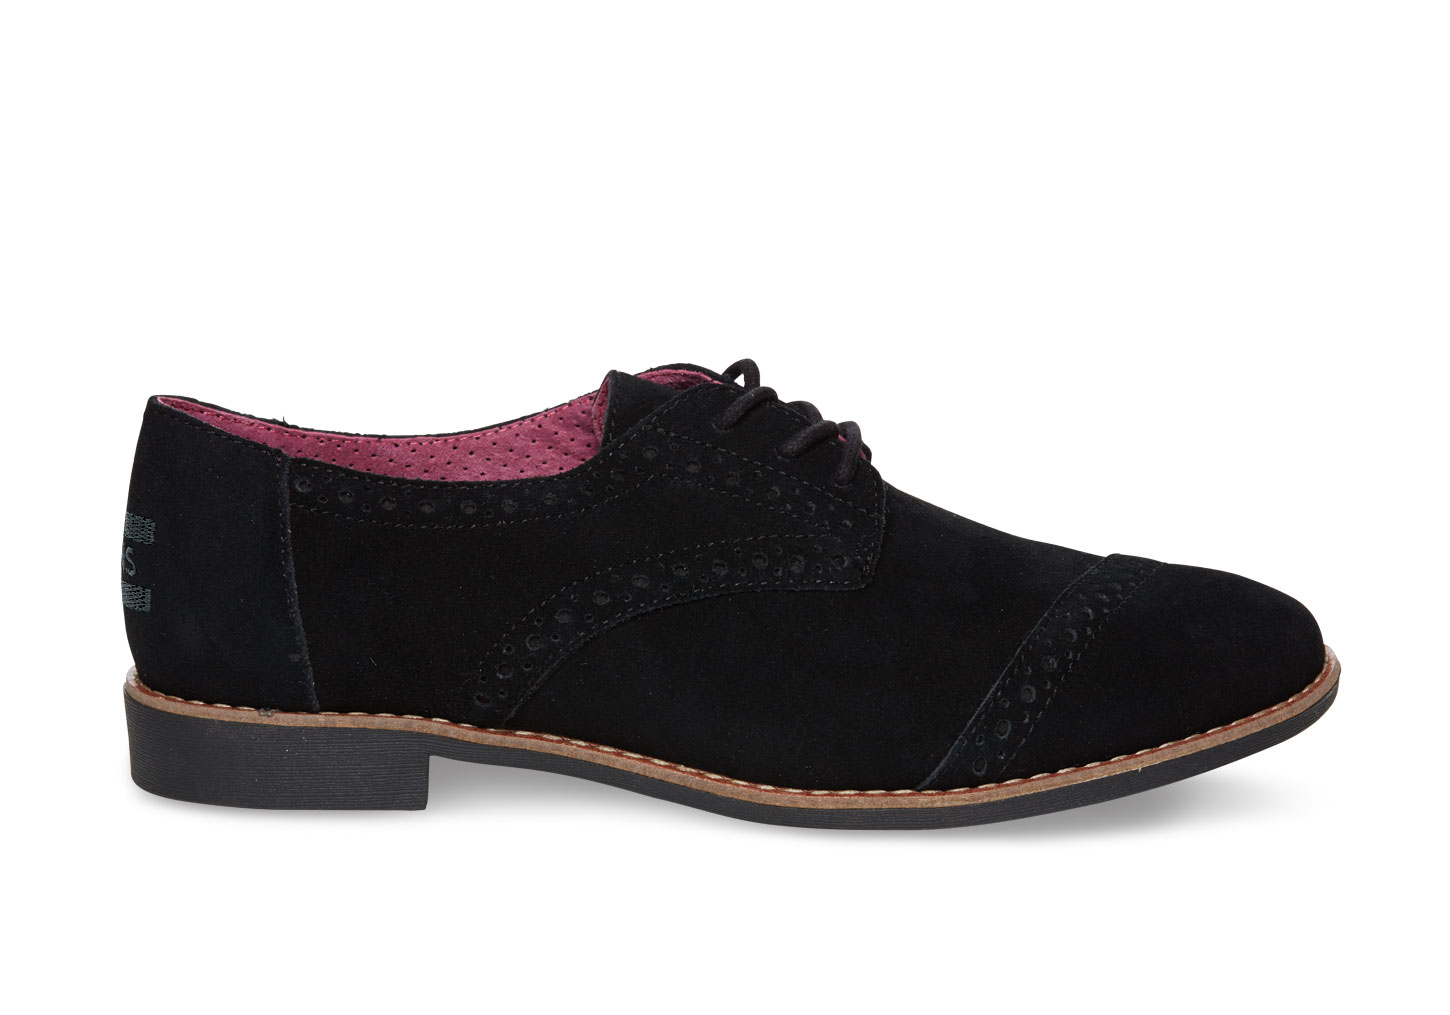 Black Suede Oxford Shoes Womens